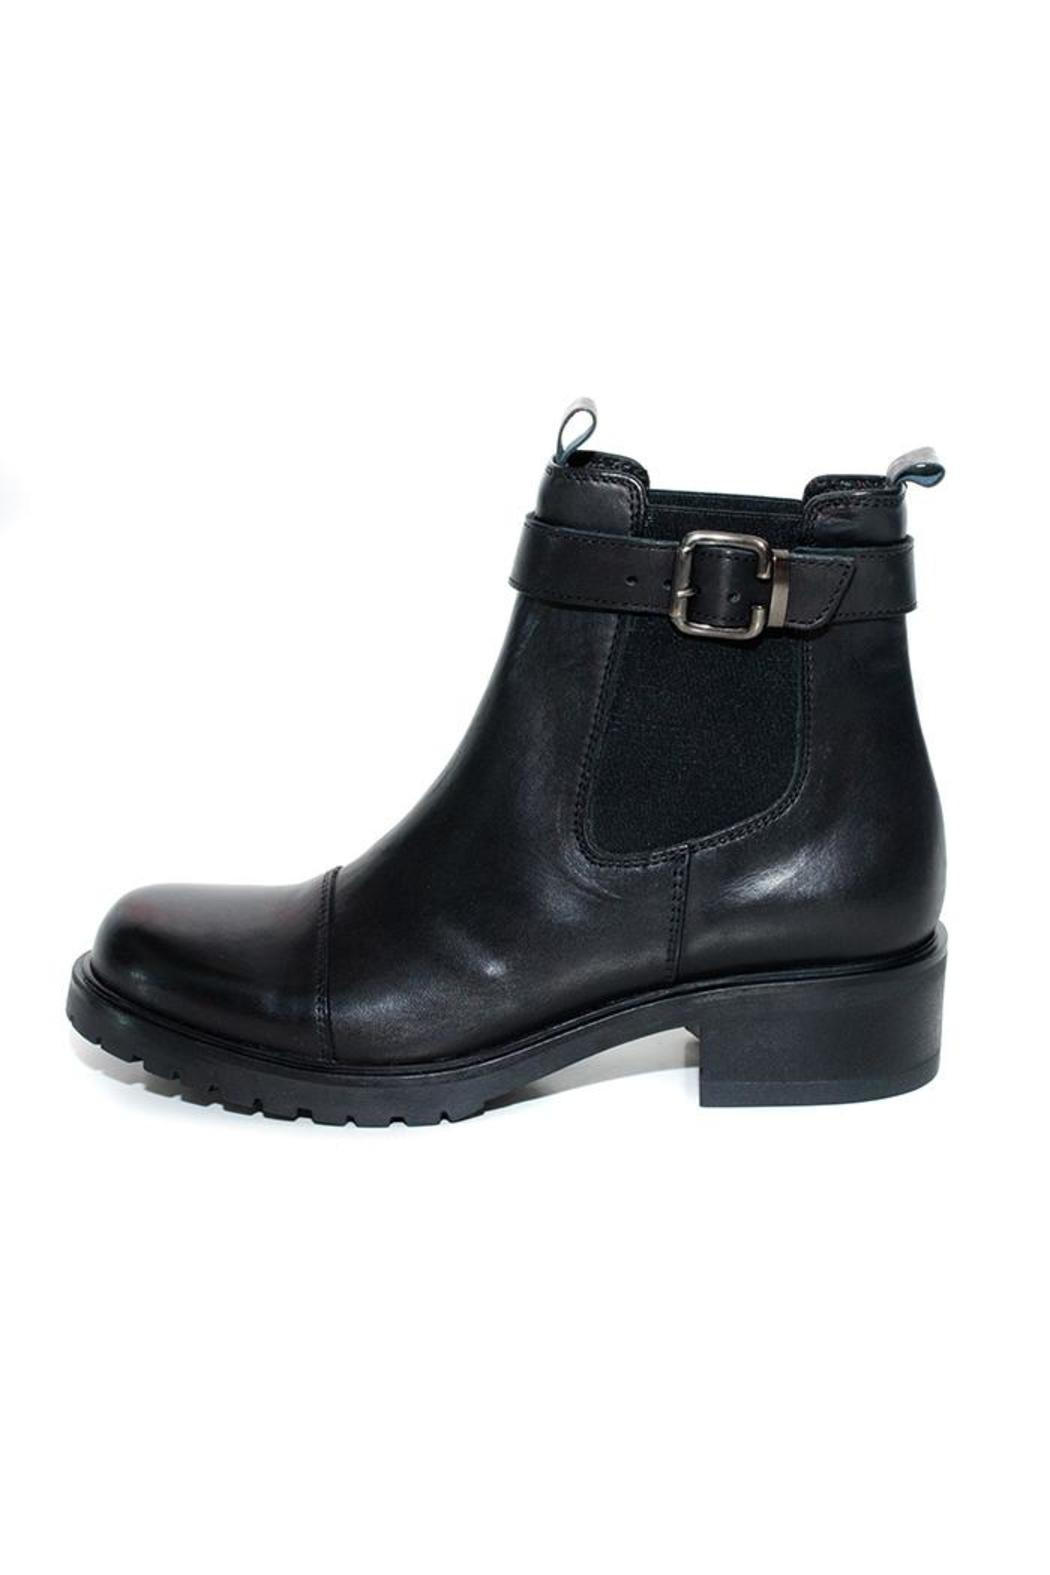 Shop only the best Boots & Booties for Women at Forever Find everything from on-trend ankle boots to over-the-knee boots in sleek and embellished designs. Related Searches black block heel boots. black studded boots. womens boots. floral print combat .